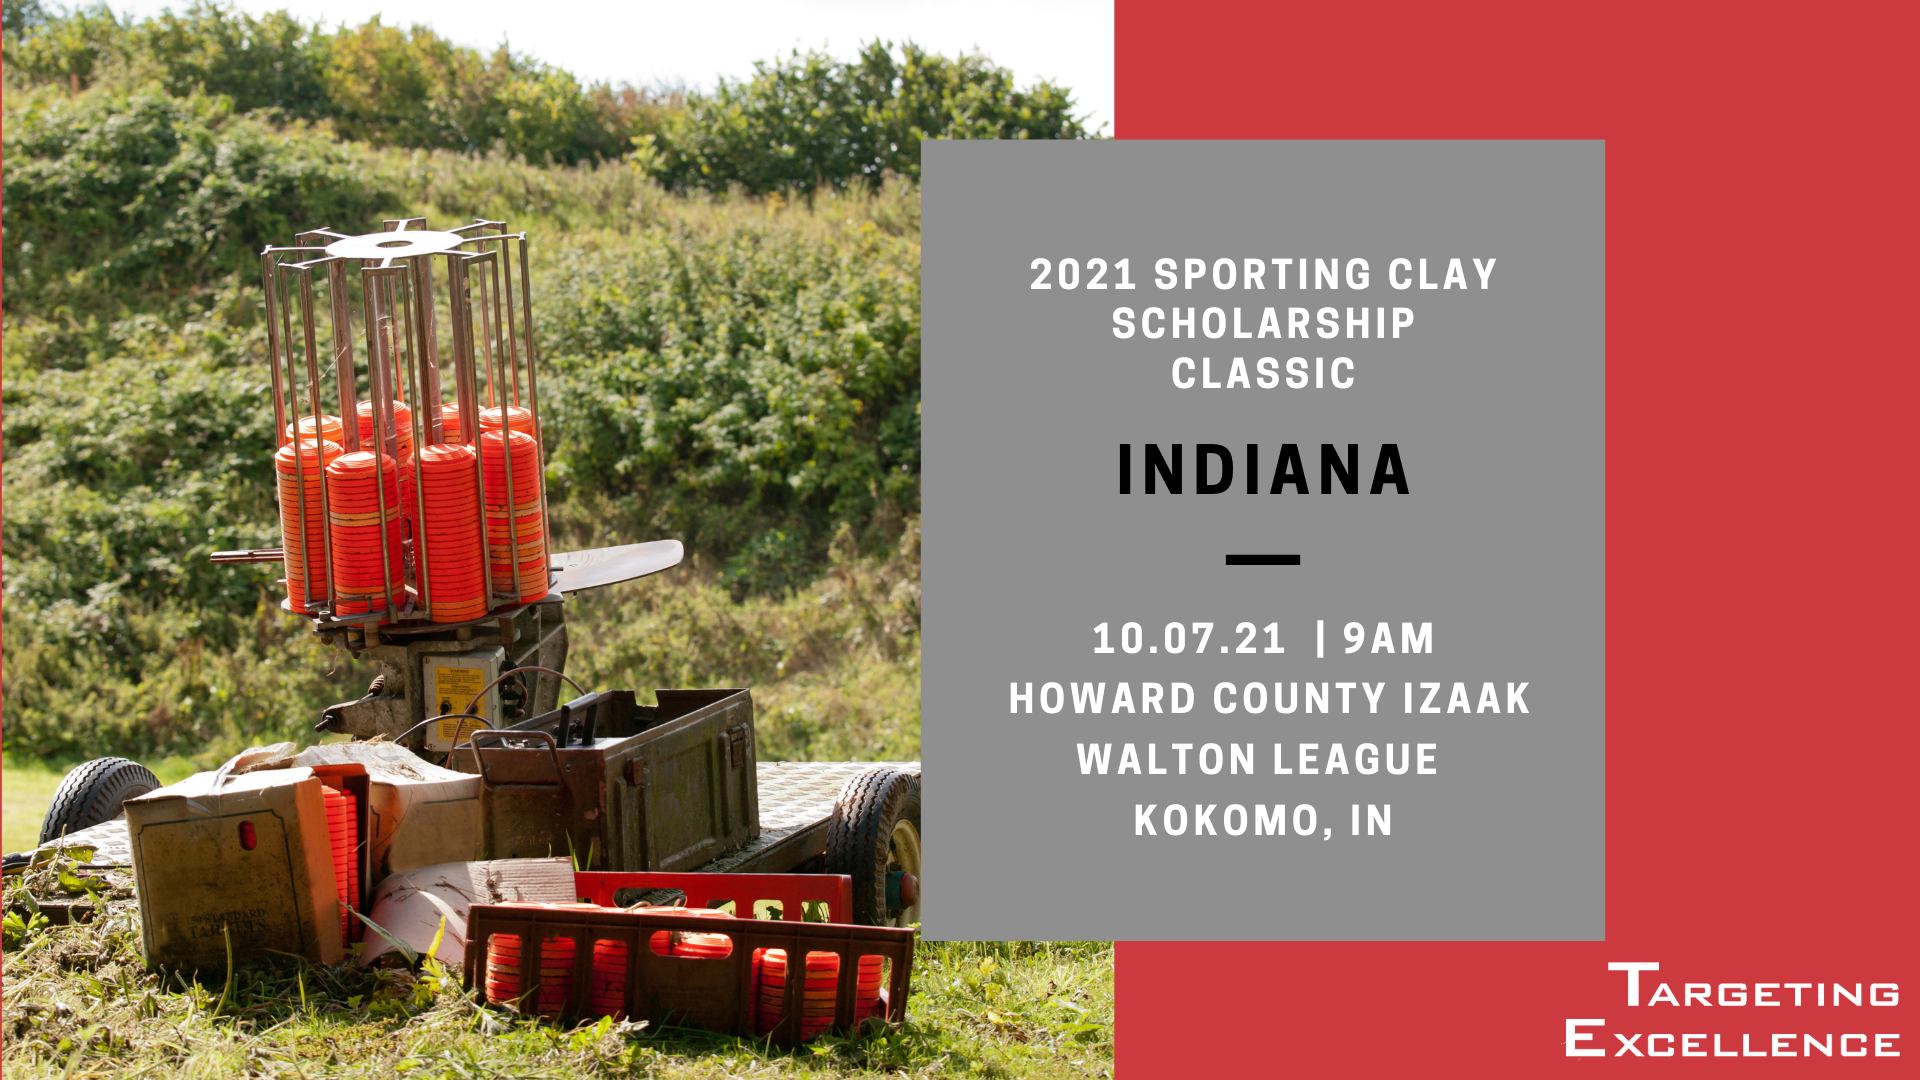 2021 Indiana Targeting Excellence Sporting Clay Scholarship Classic